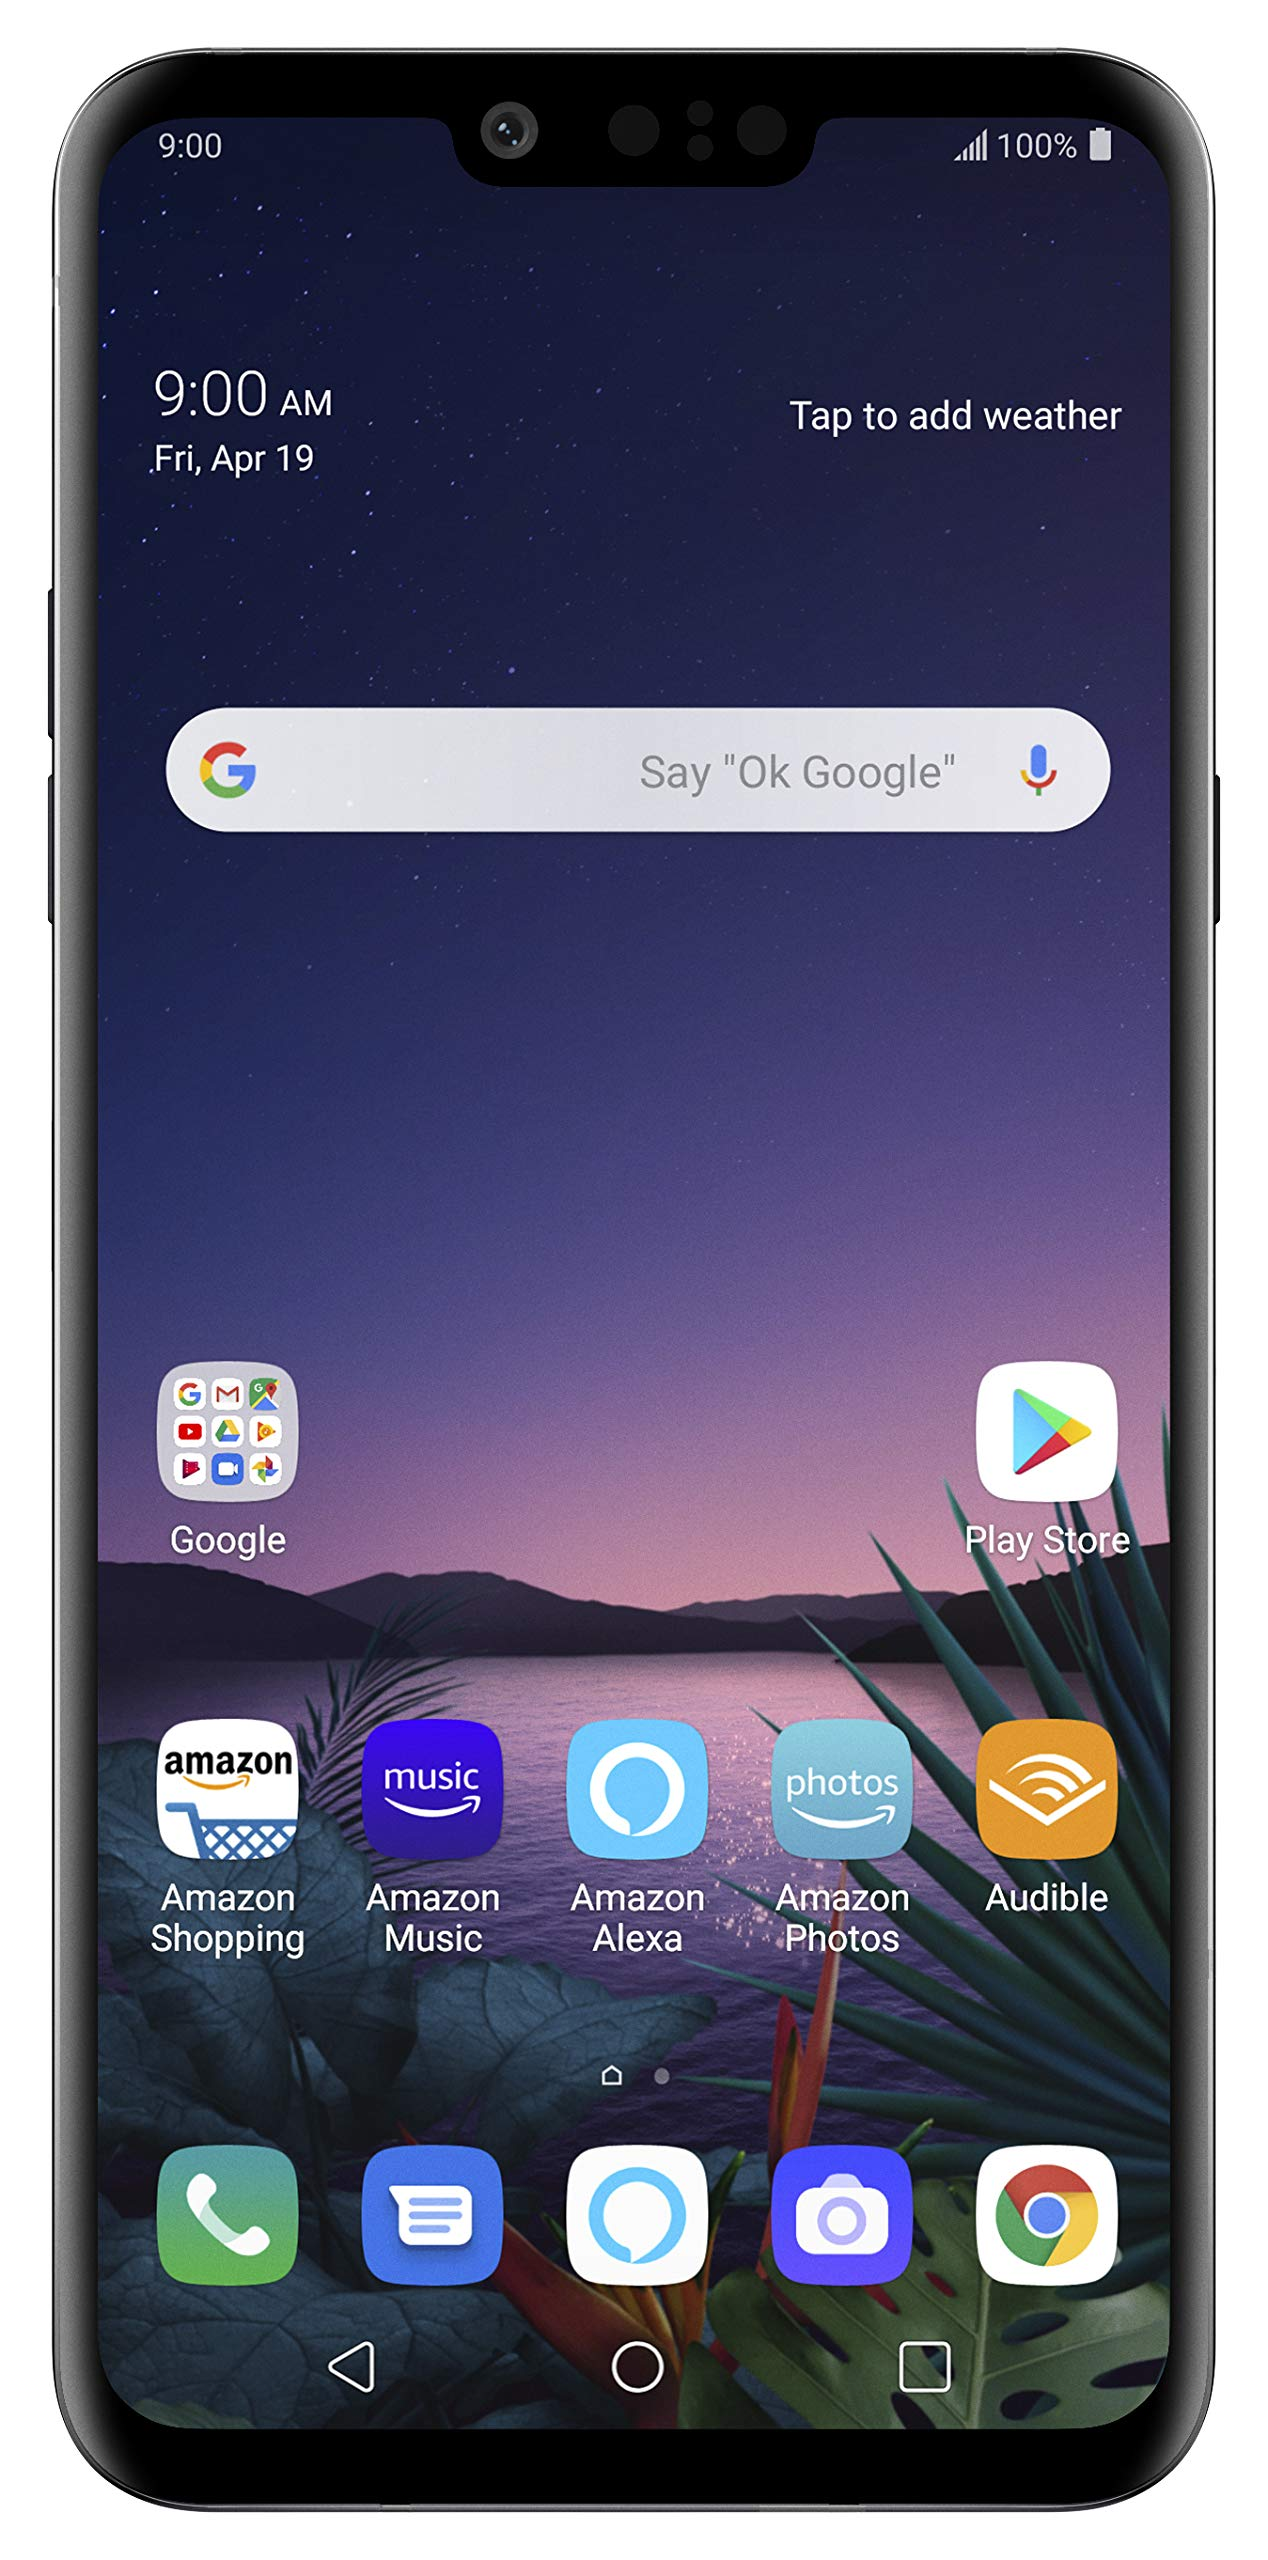 LG G8 ThinQ with Alexa Hands-Free - Unlocked SMARTPHONE - 128 GB - Aurora Black (US Warranty) - Verizon, AT&T, T-Mobile, Sprint, Boost, Cricket, & Metro by LG